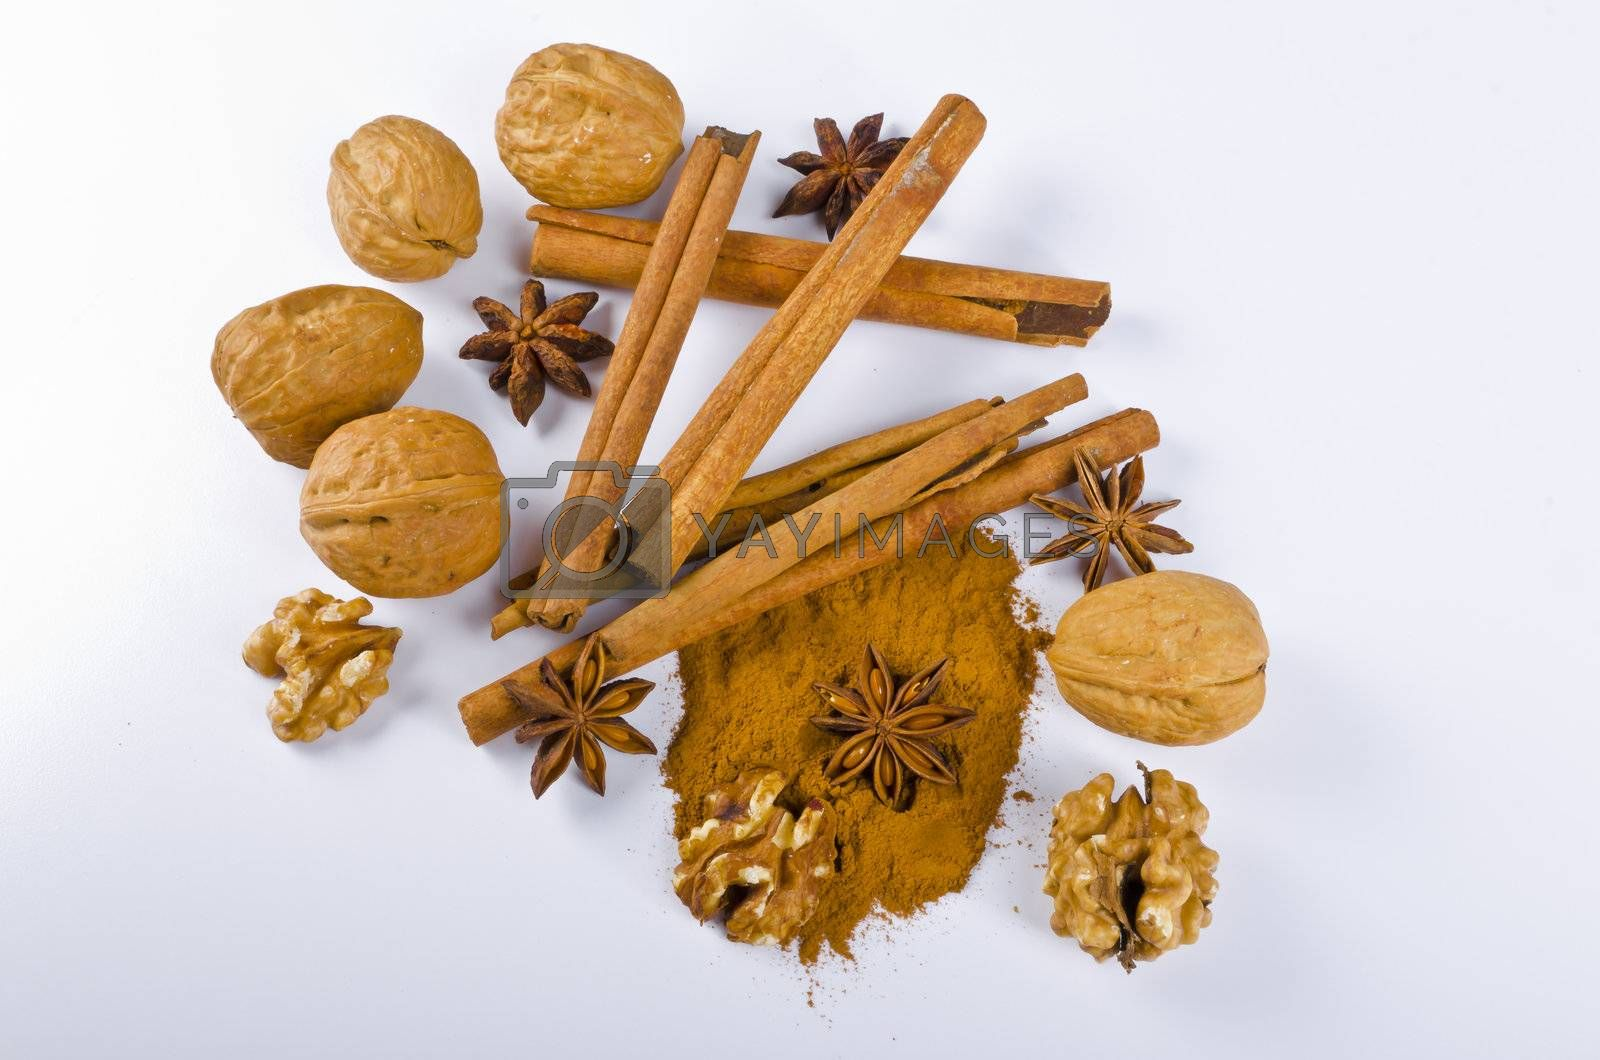 What would be gingerbreads, Christmas little places or mulled wine without cinnamon and aniseed, the typical Christmassy spices?